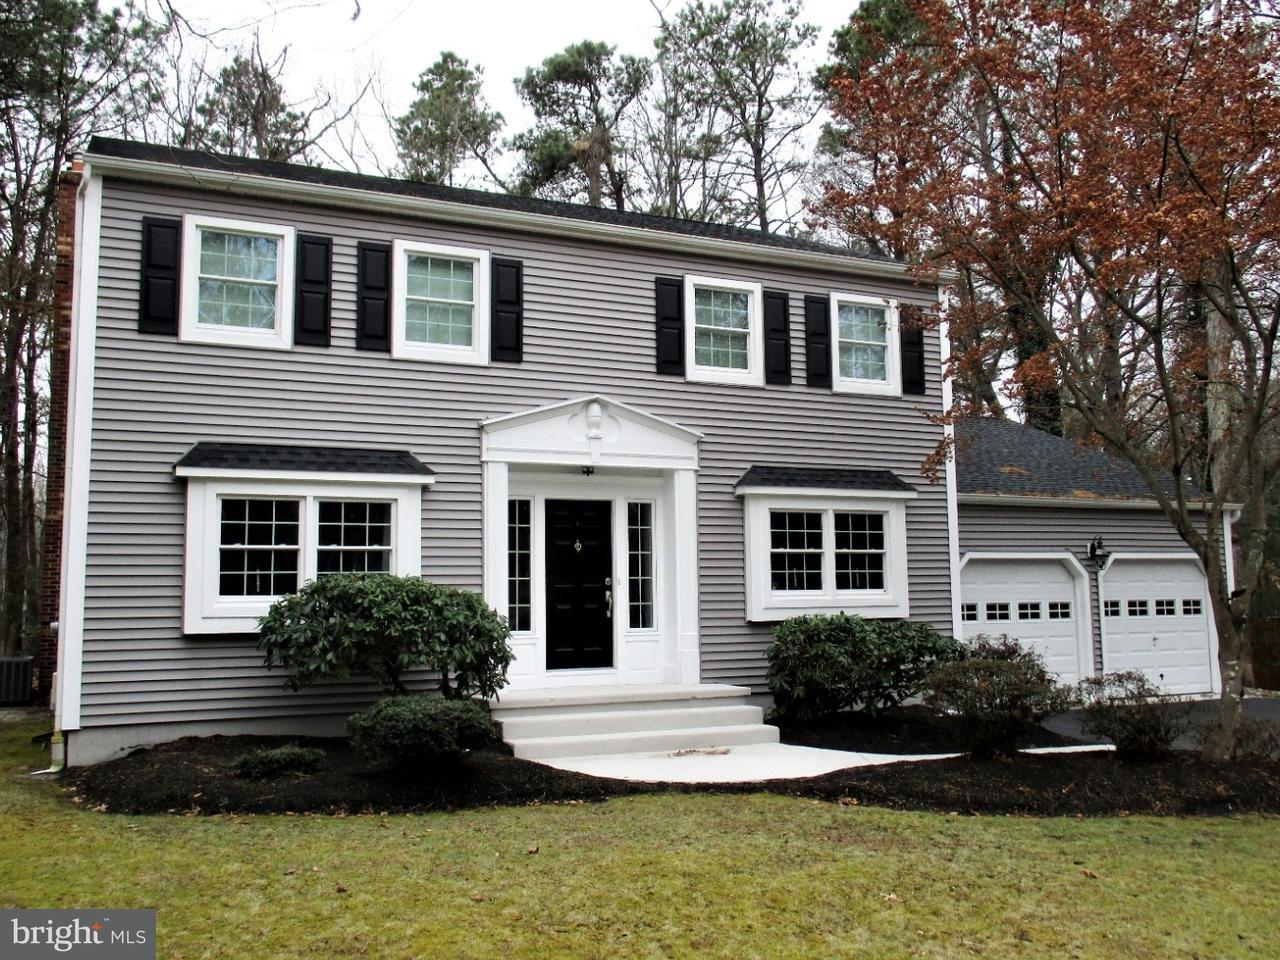 Single Family Home for Sale at 4 HILL Court Medford Township, New Jersey 08055 United States